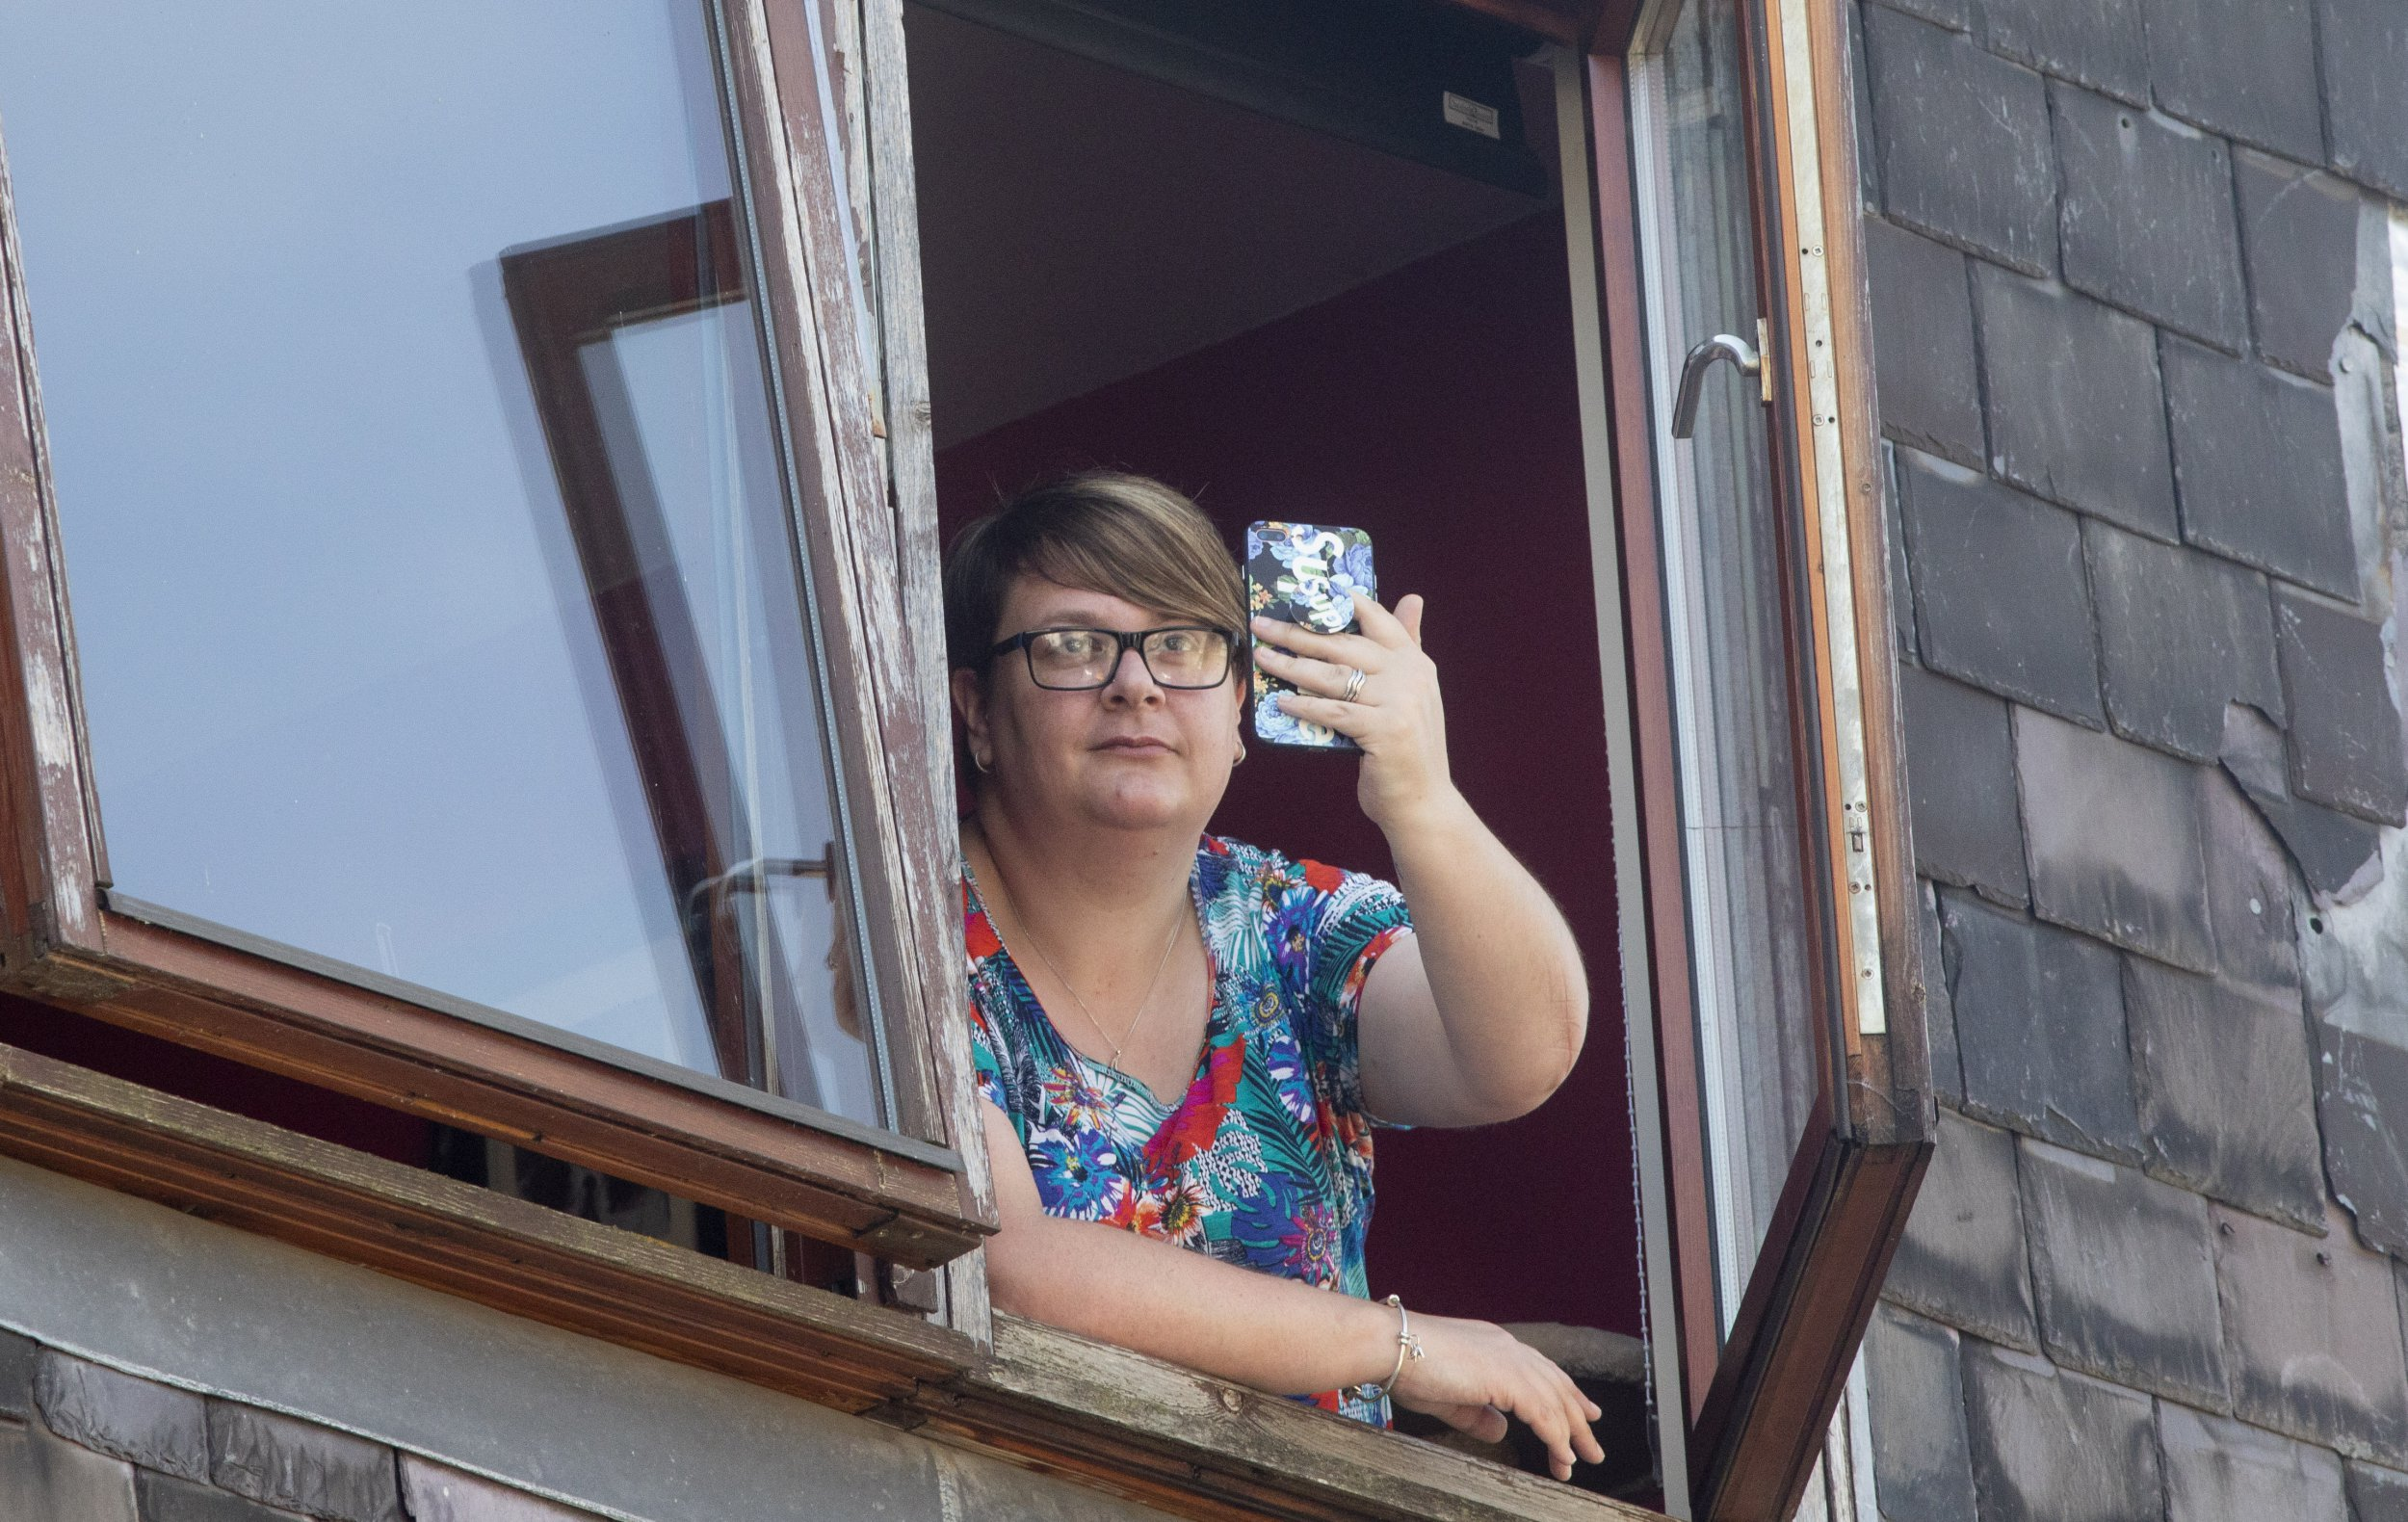 """Tracey Kutluol from Galashiels in the Scottish Borders whose phone was struck by lightening when she was leaning out of her top floor window to film the storm. July 27 2018. See Centre Press story CPLIGHTNING; This is the terrifying moment a women's phone records being struck by a bolt of LIGHTNING - as she tried to film a thunderstorm. Tracey Kutluol was filming the storm from her living room window when her iPhone was zapped by the thunderbolt at 10pm last night (Thurs). The dramatic footage shows Tracey, from Galashiels, Scottish Borders, joking """"I'm going to get electrocuted"""" as she opened her window to get a better look at the storm. The video shows dark clouds and thunder can be heard before a flash of lightning strikes the phone. The mum-of-two, who was with her children Max, ten and Mia, 14, while filming the video, said her life flashed before her eyes."""